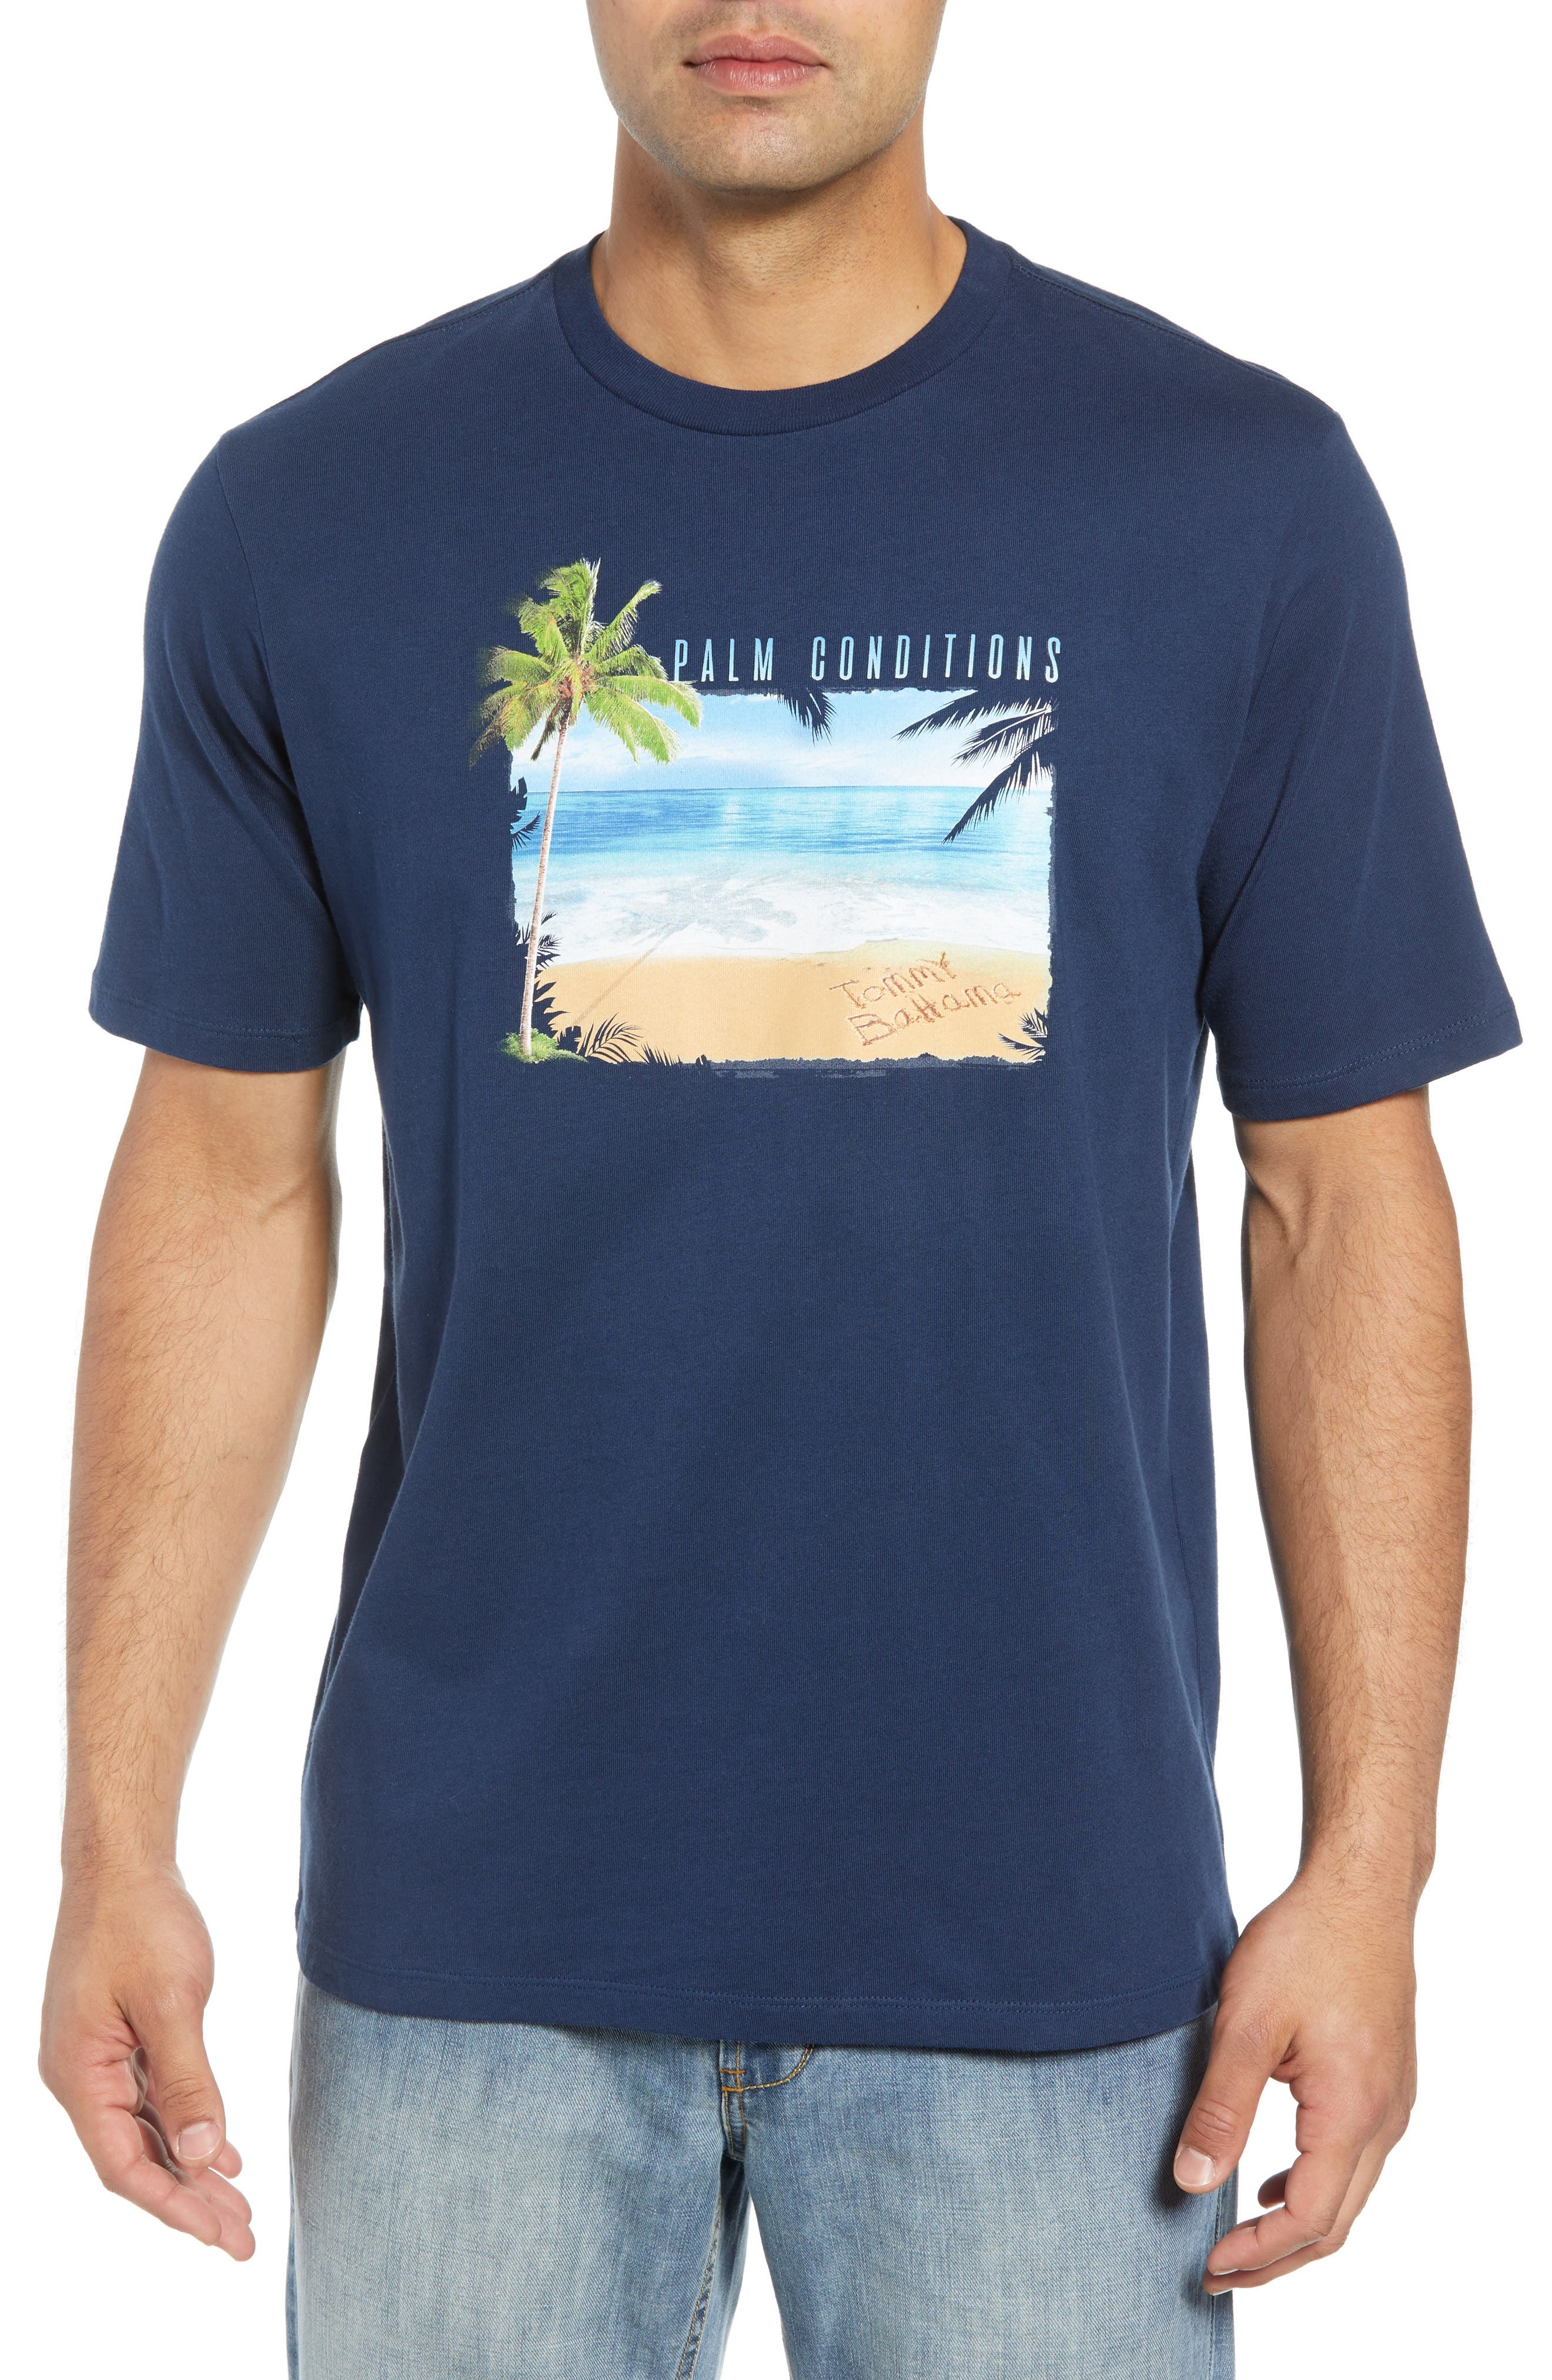 Palm Conditions T-Shirt,                         Main,                         color, NAVY